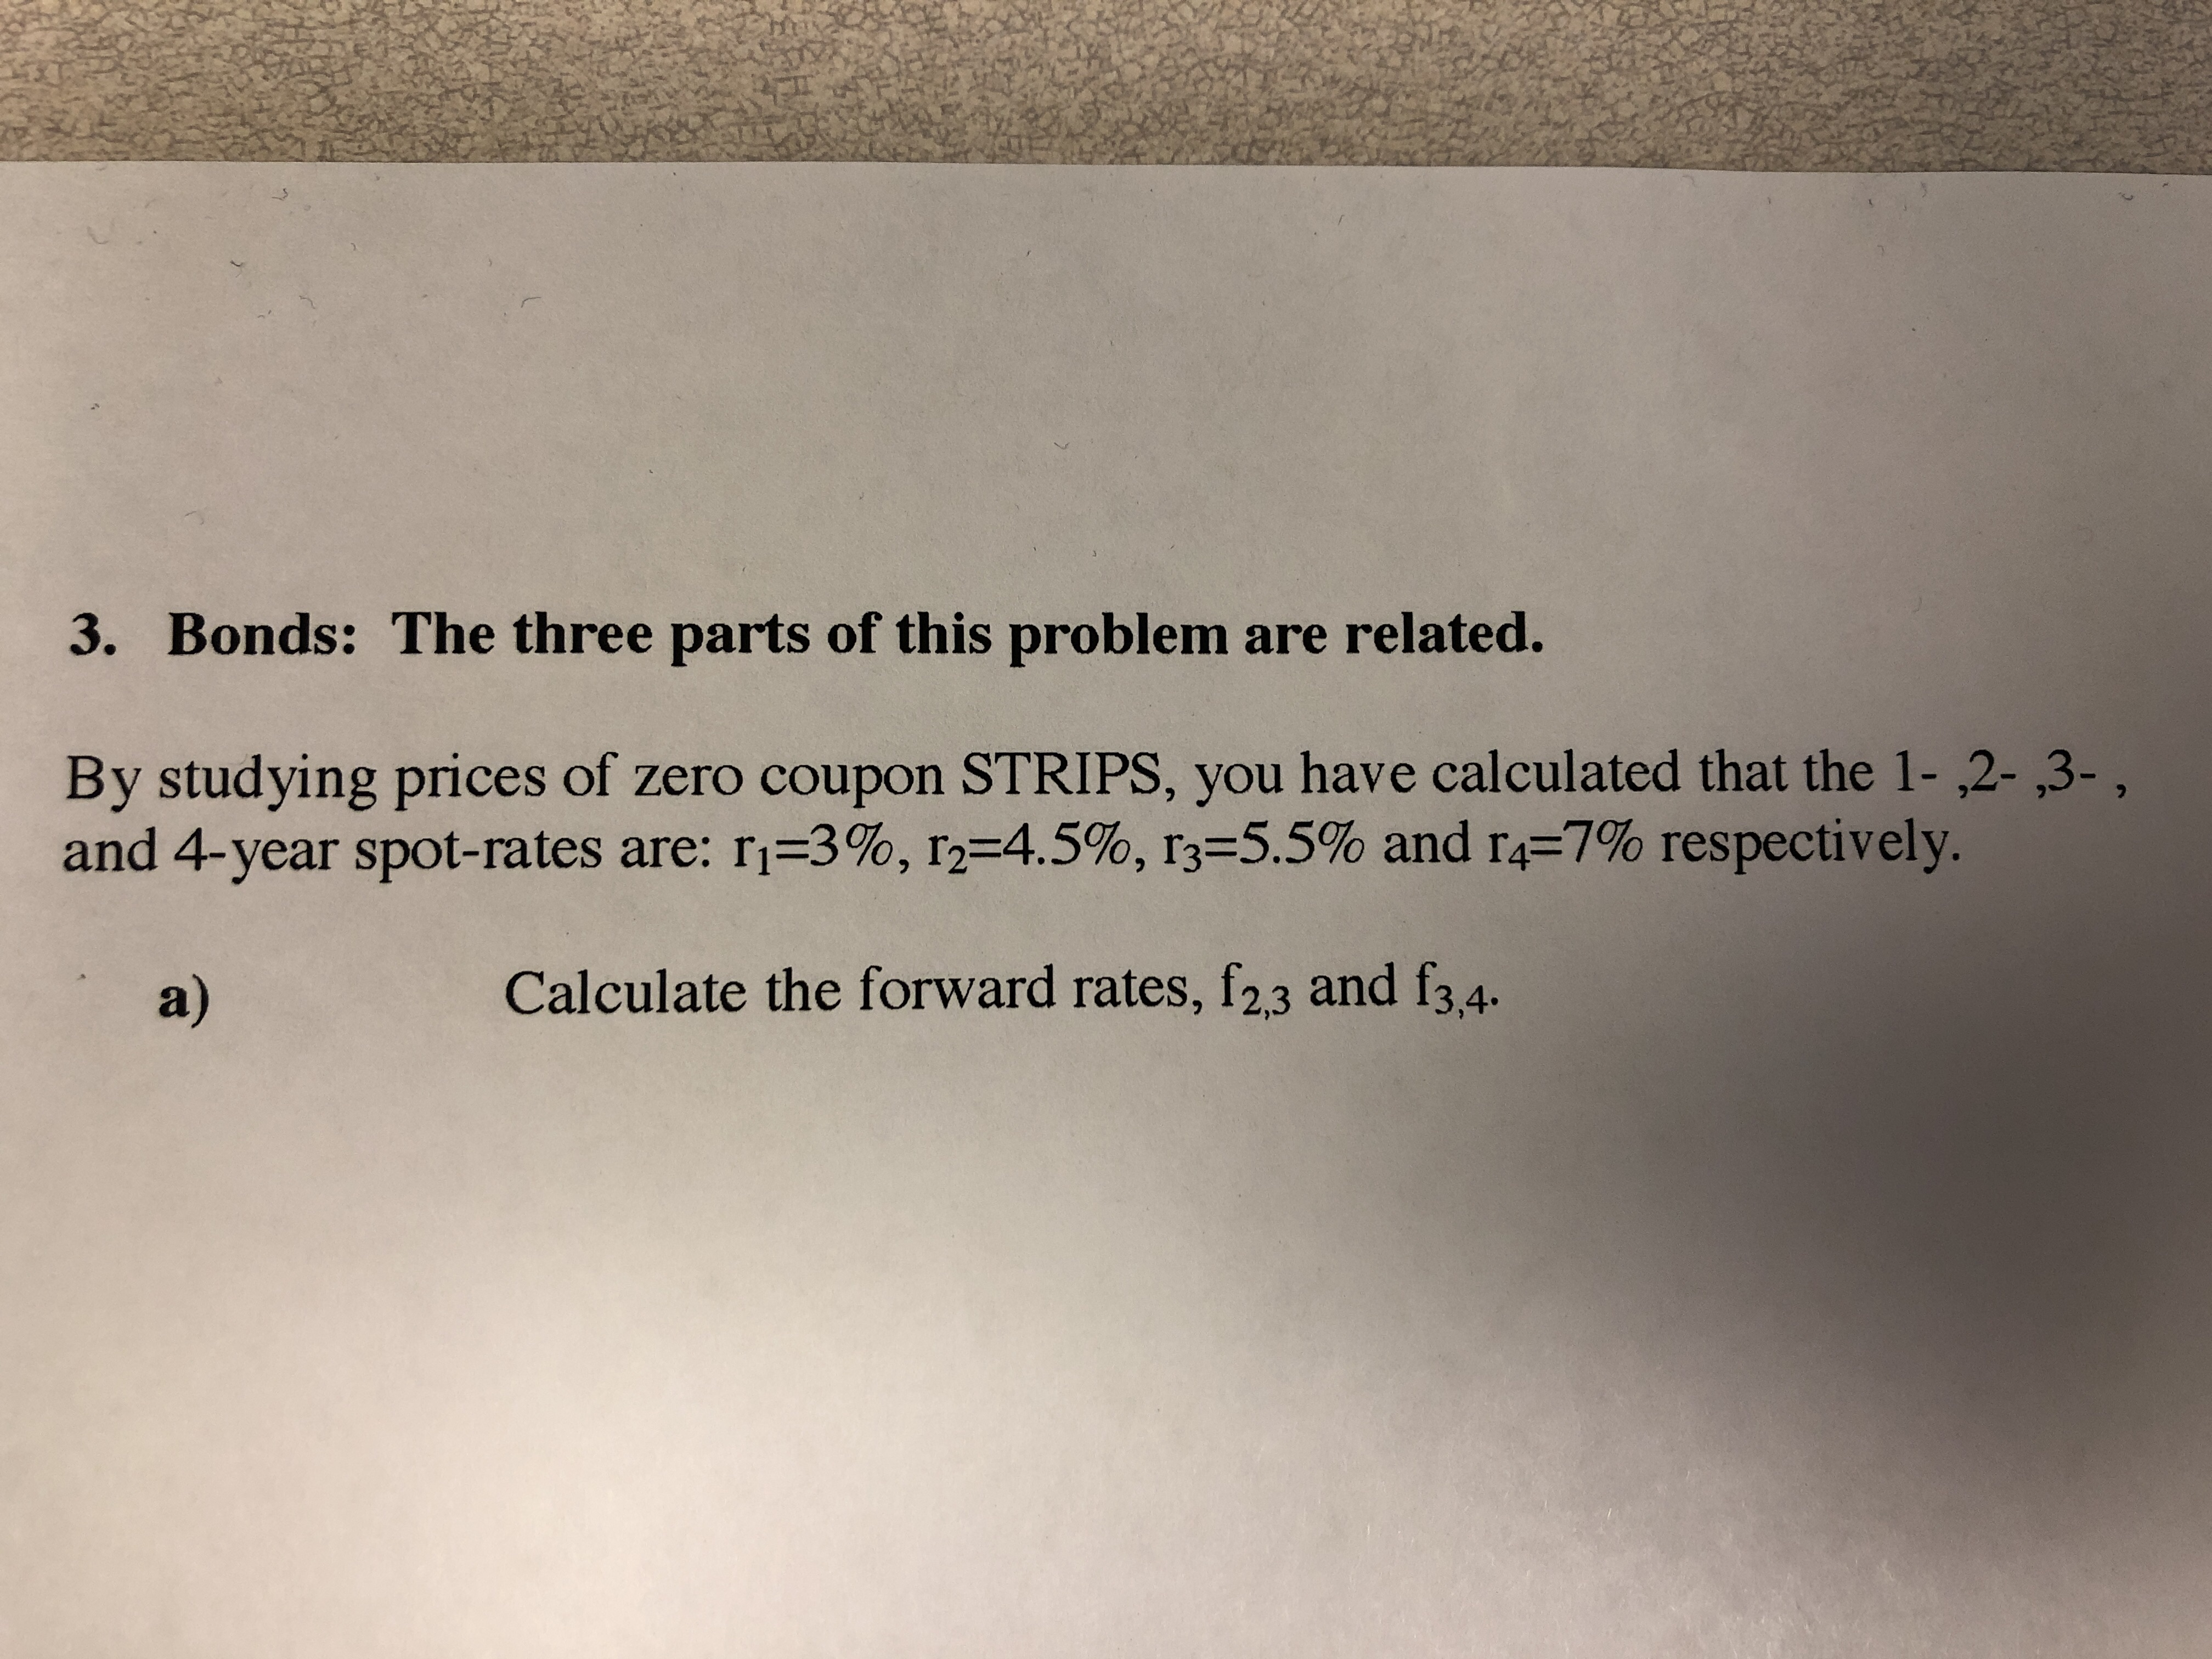 3. Bonds: The three parts of this problem are related. By studying prices of zero coupon STRIPS, you have calculated that the 1- ,2- ,3-, and 4-year spot-rates are: ri-3%, 12-4.5 %, r3-5.5% and r4-7% respectively. a) Calculate the forward rates, f23 and f3,4.